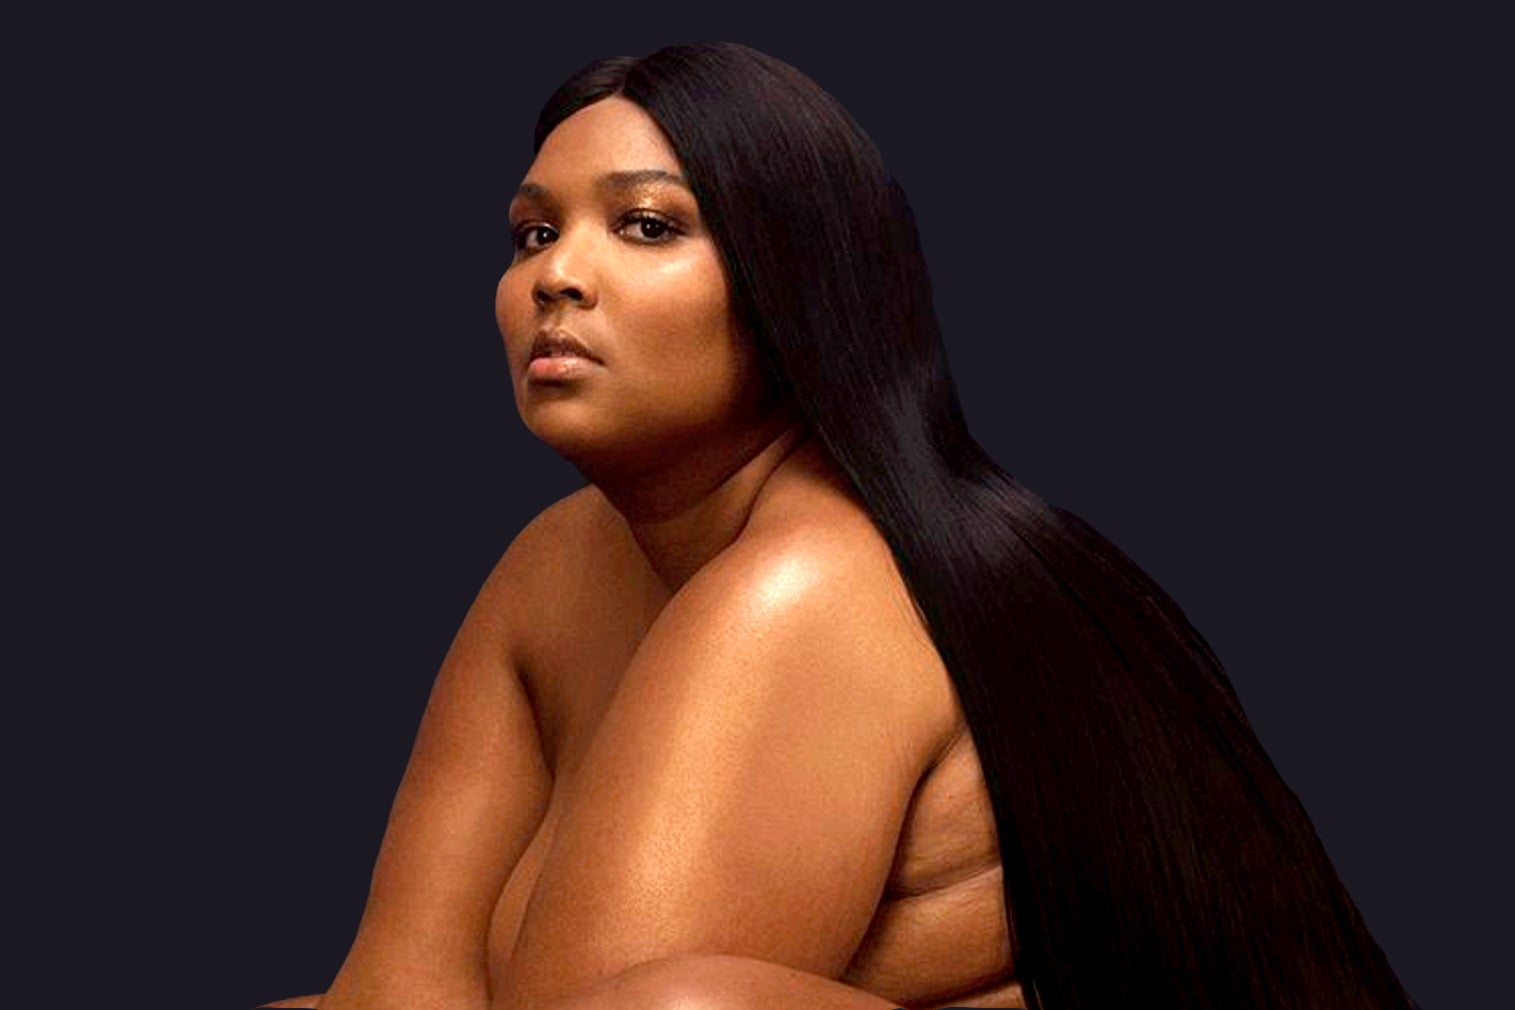 Lizzo, looking glamorous and naked on the album cover.